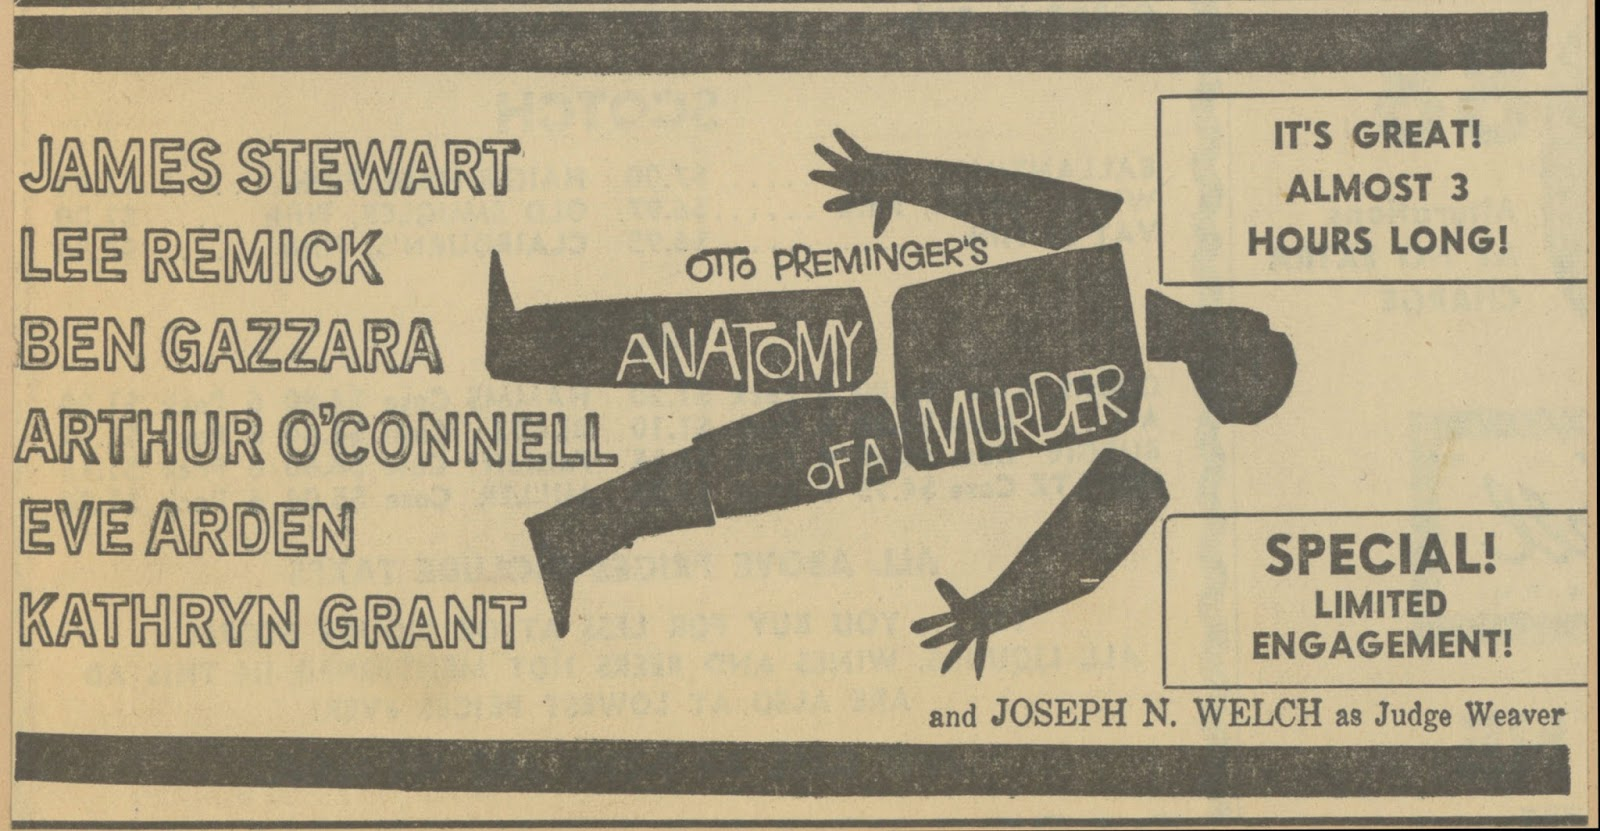 Magnificent The Anatomy Of A Murder Composition - Human Anatomy ...